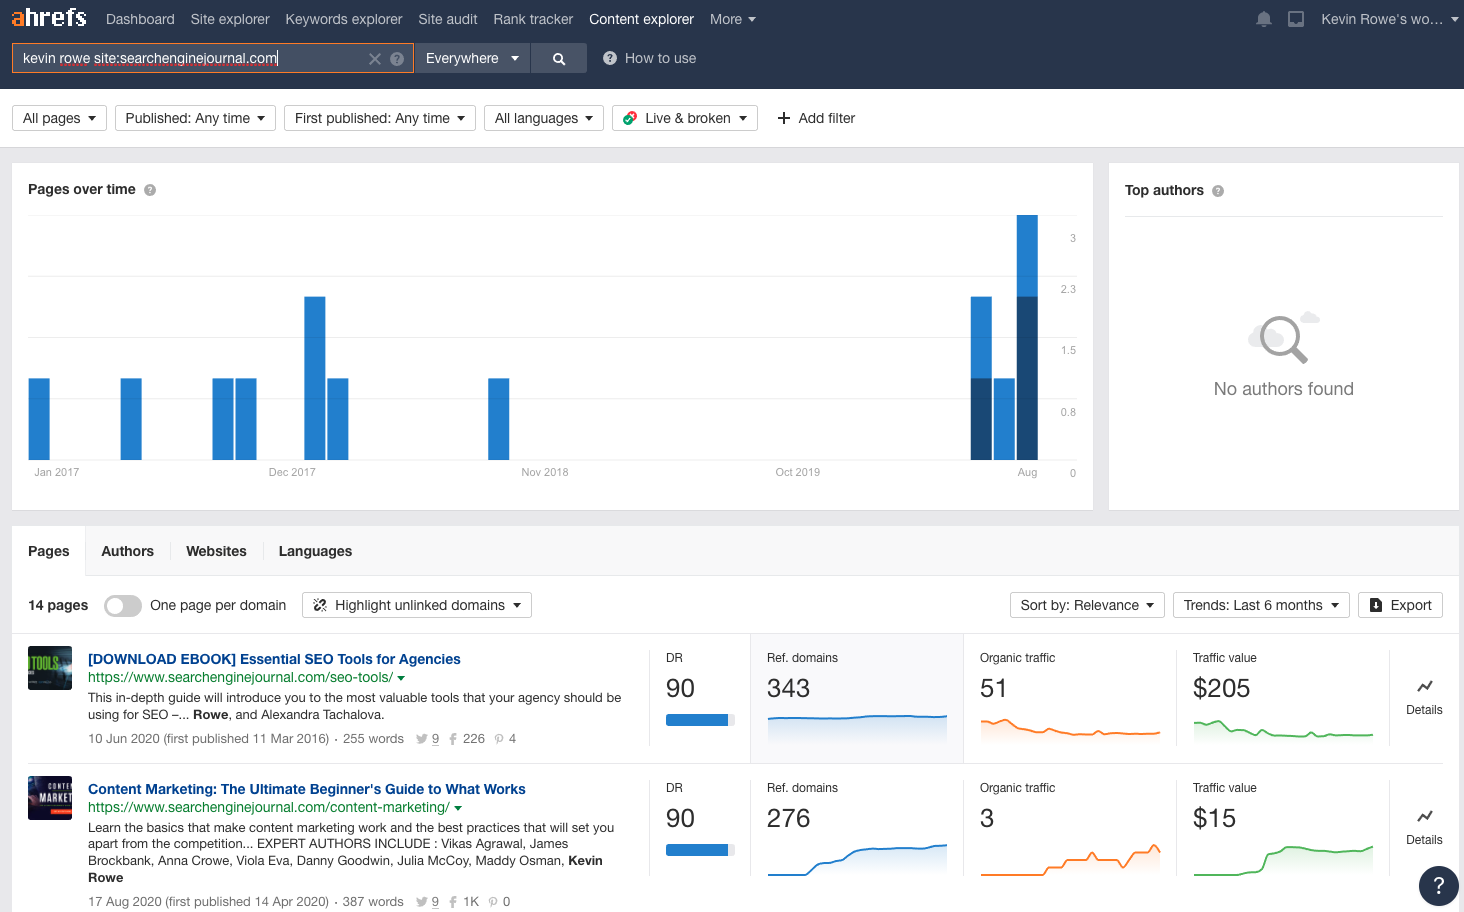 ahrefs content explore for unlinked brand mentions